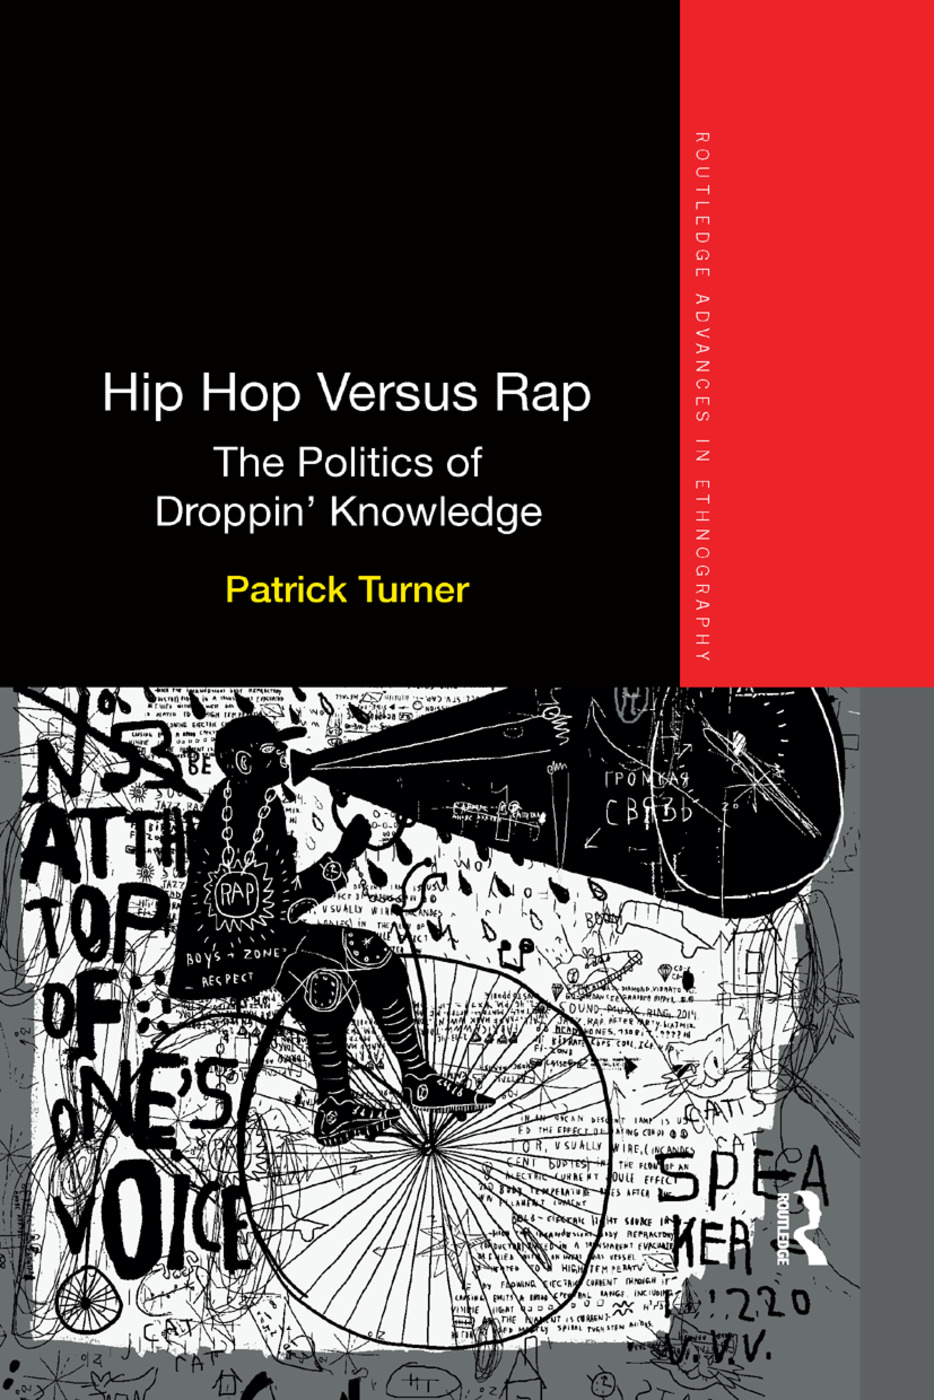 Hip Hop Versus Rap: The Politics of Droppin' Knowledge book cover